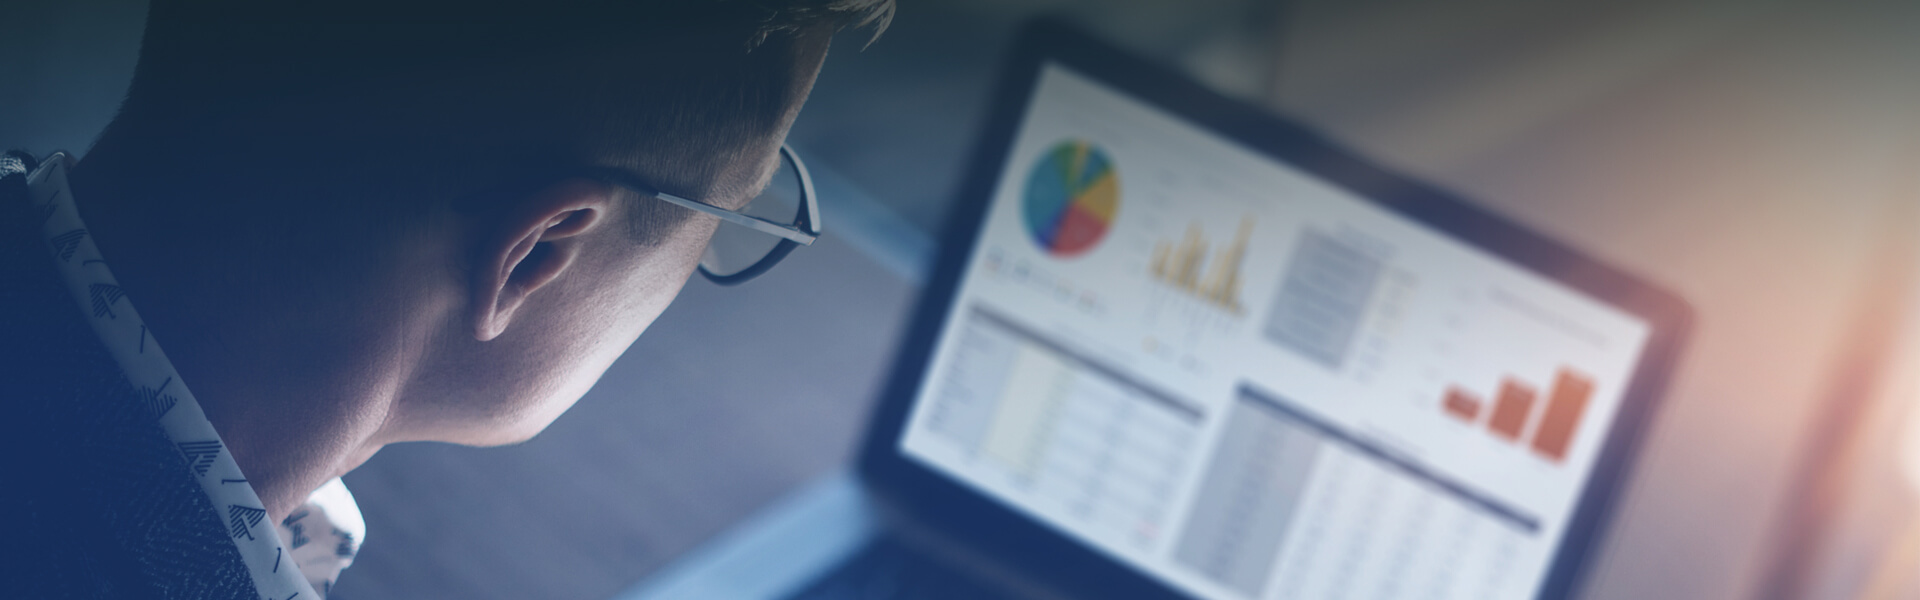 AIM (Analytics in Investment Management) Reporting as Managed Service